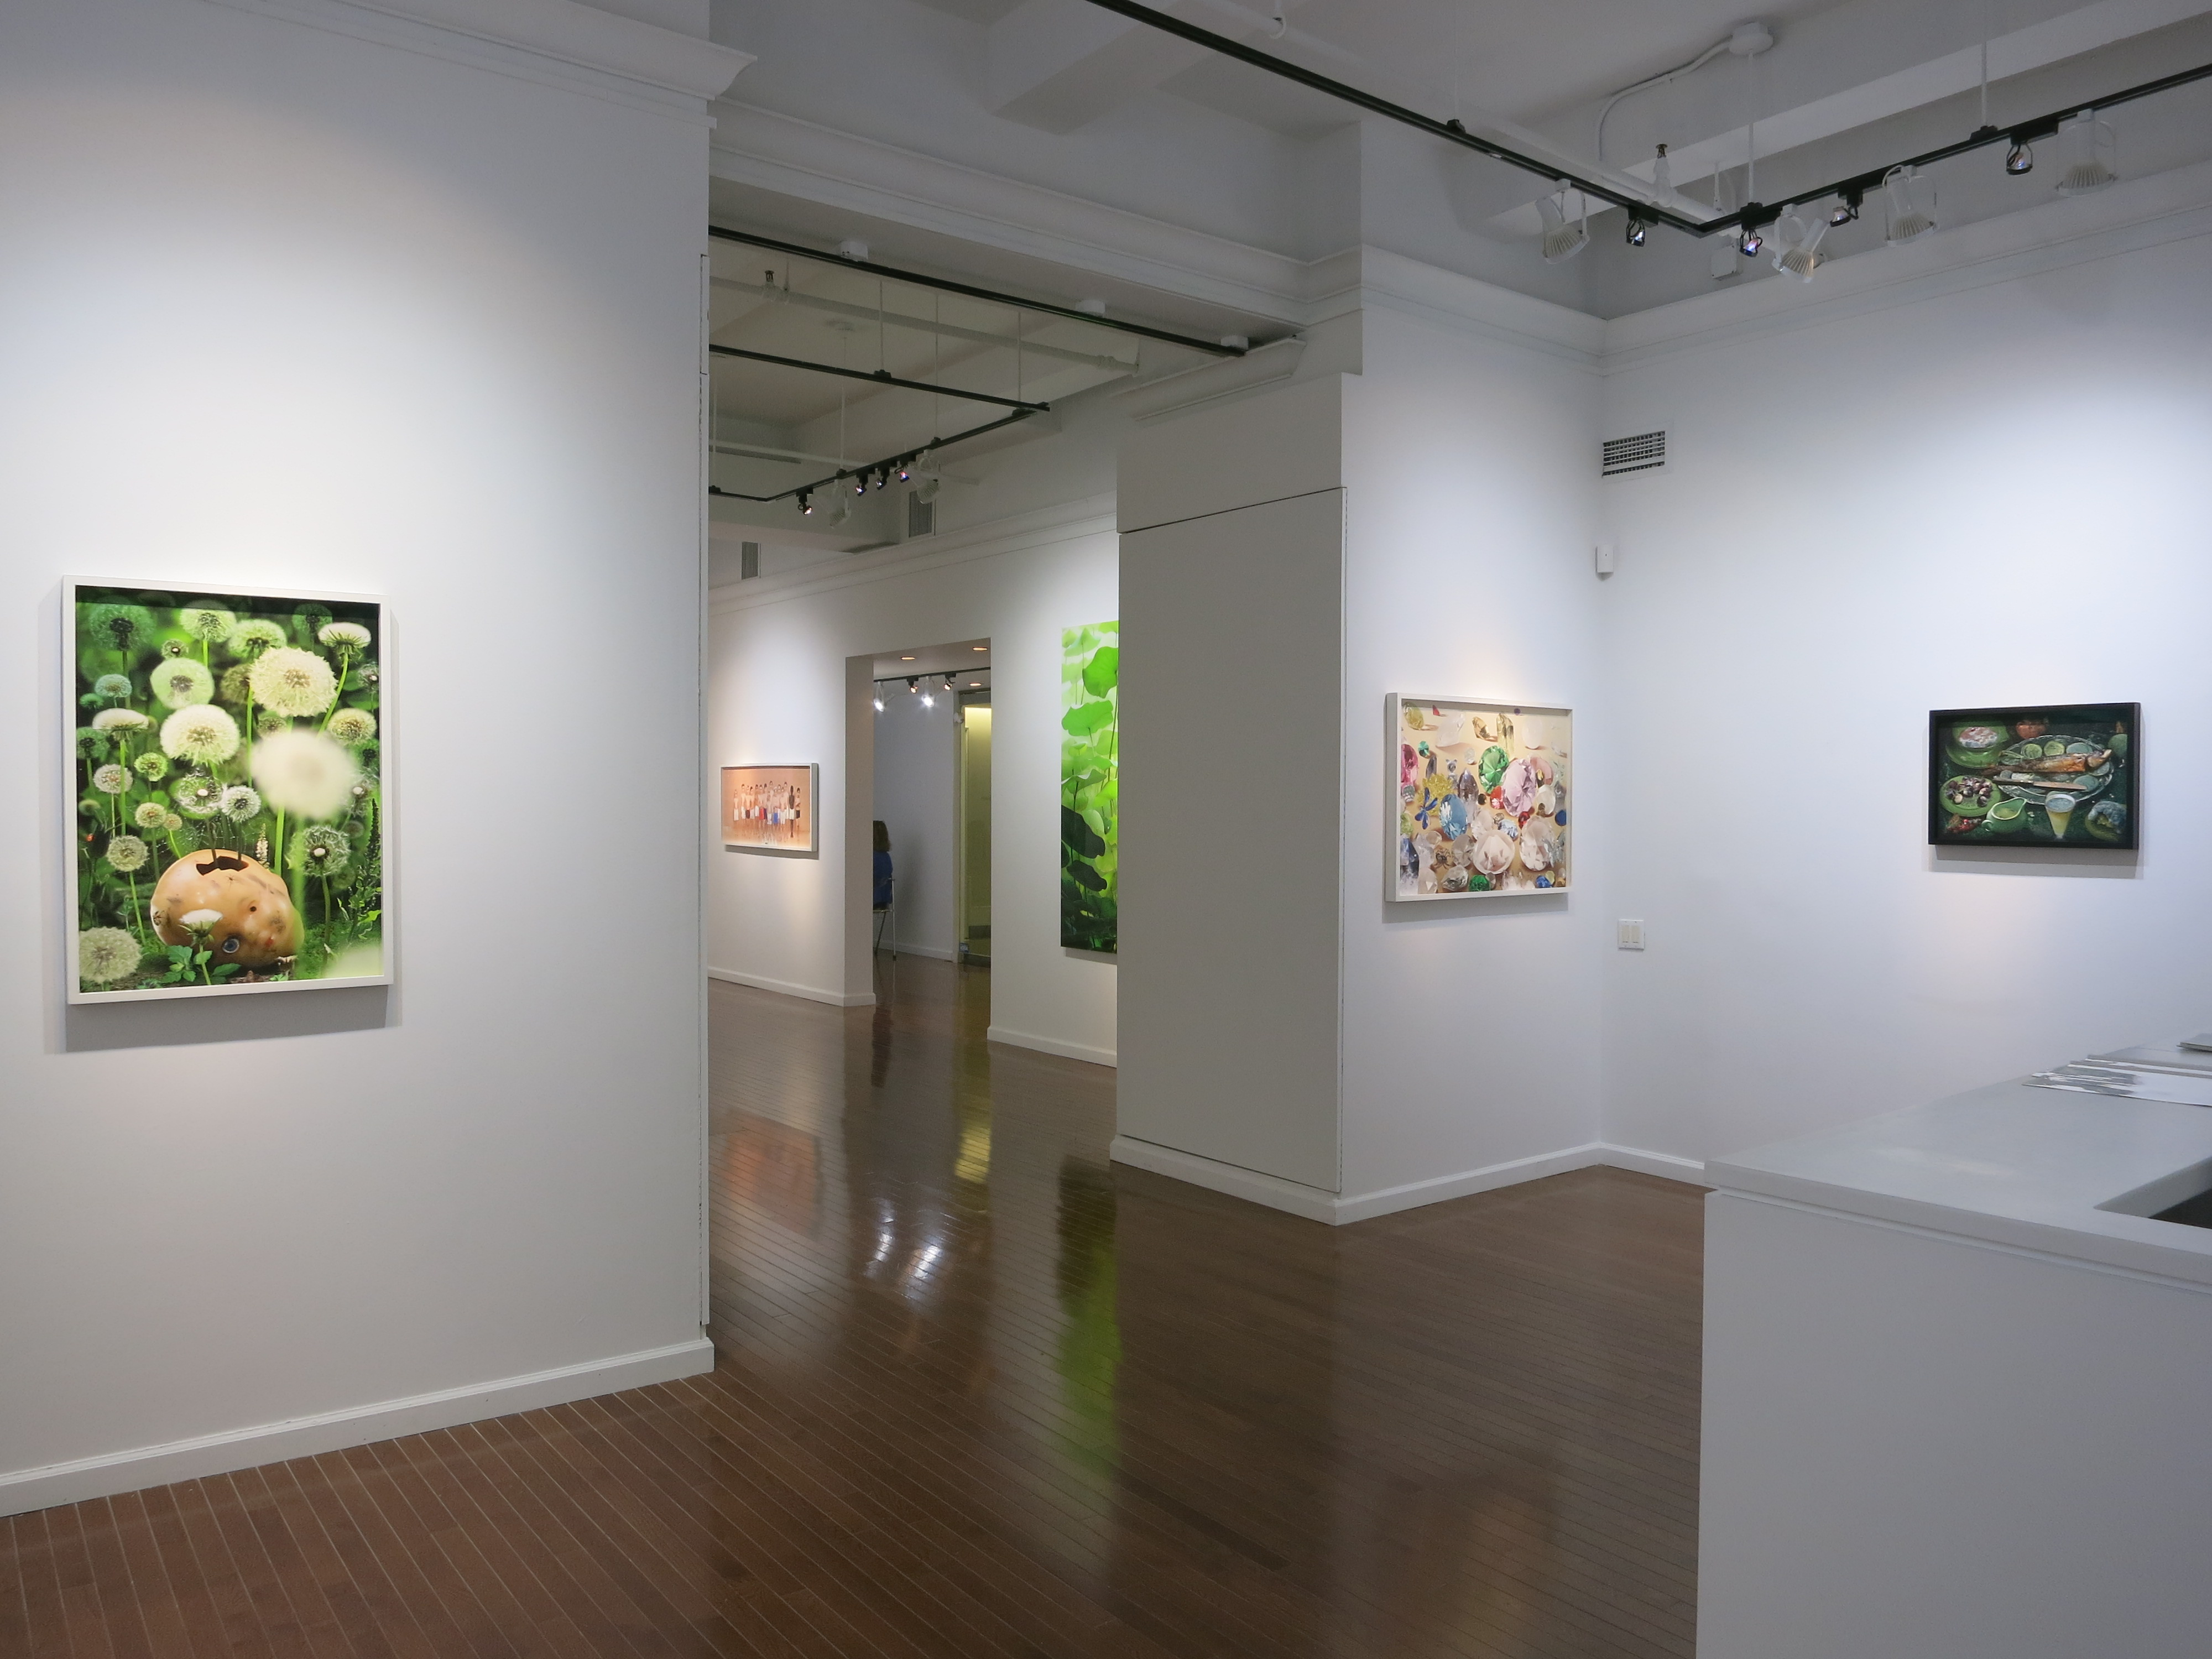 """The gallery is currently showing Ruud Van Empel's """"Identities"""" through December 20. (Courtesy Stux + Haller)"""